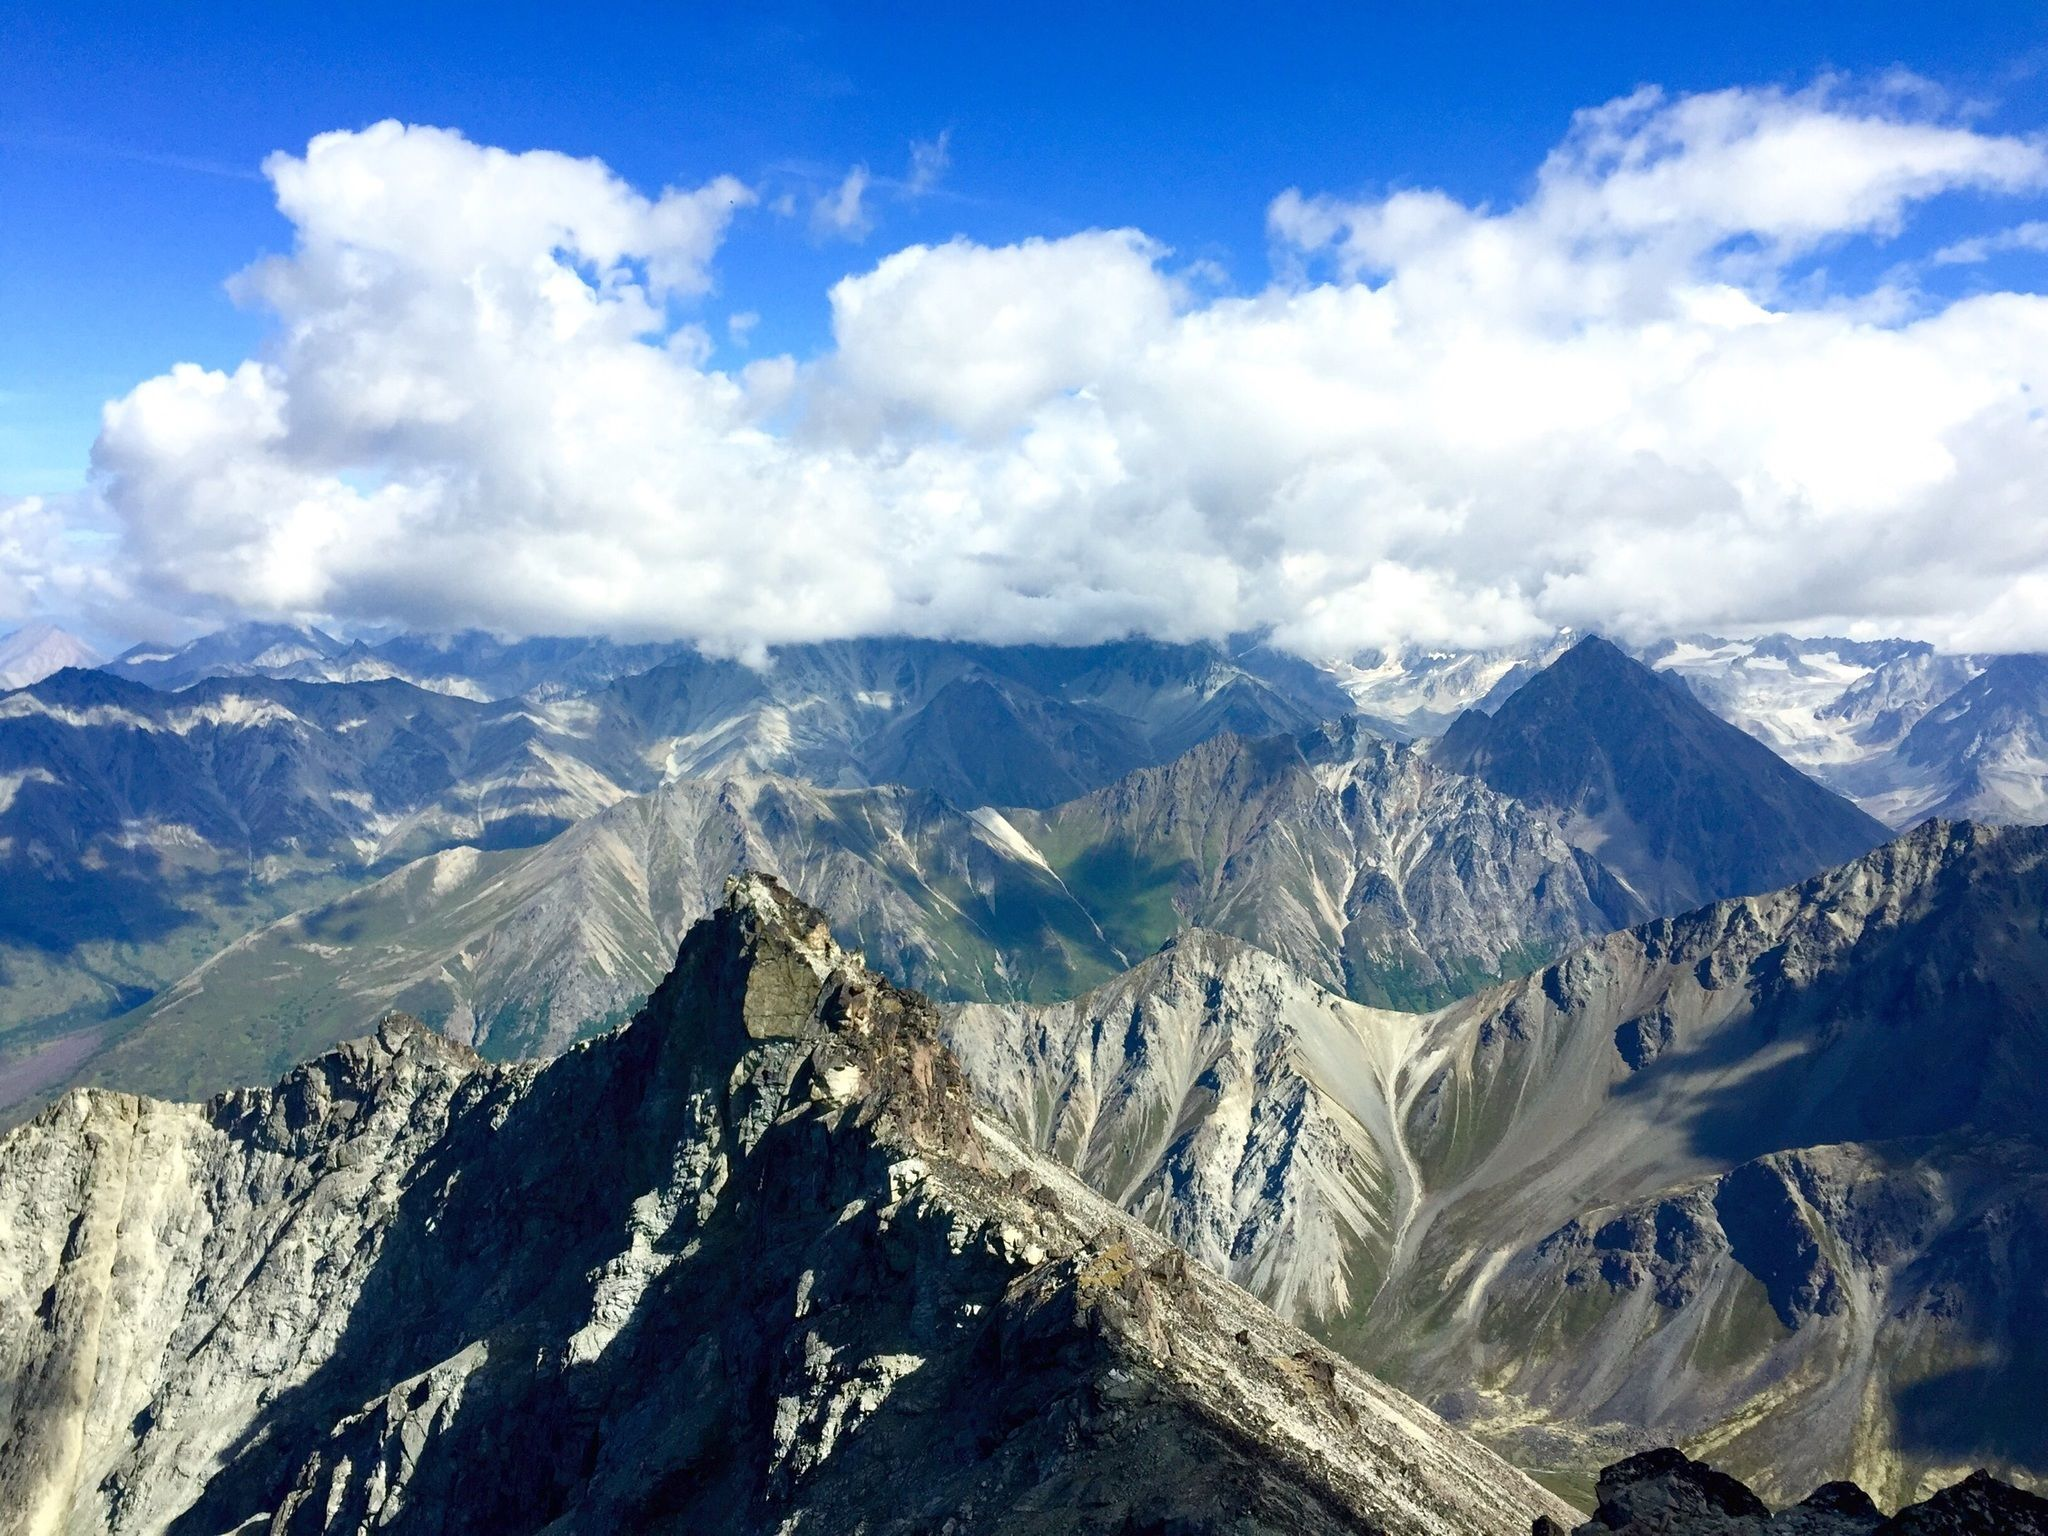 Hiking the Lazy Mountain Trail in Spring - The Alaska Life |Lazy Mountain Trail